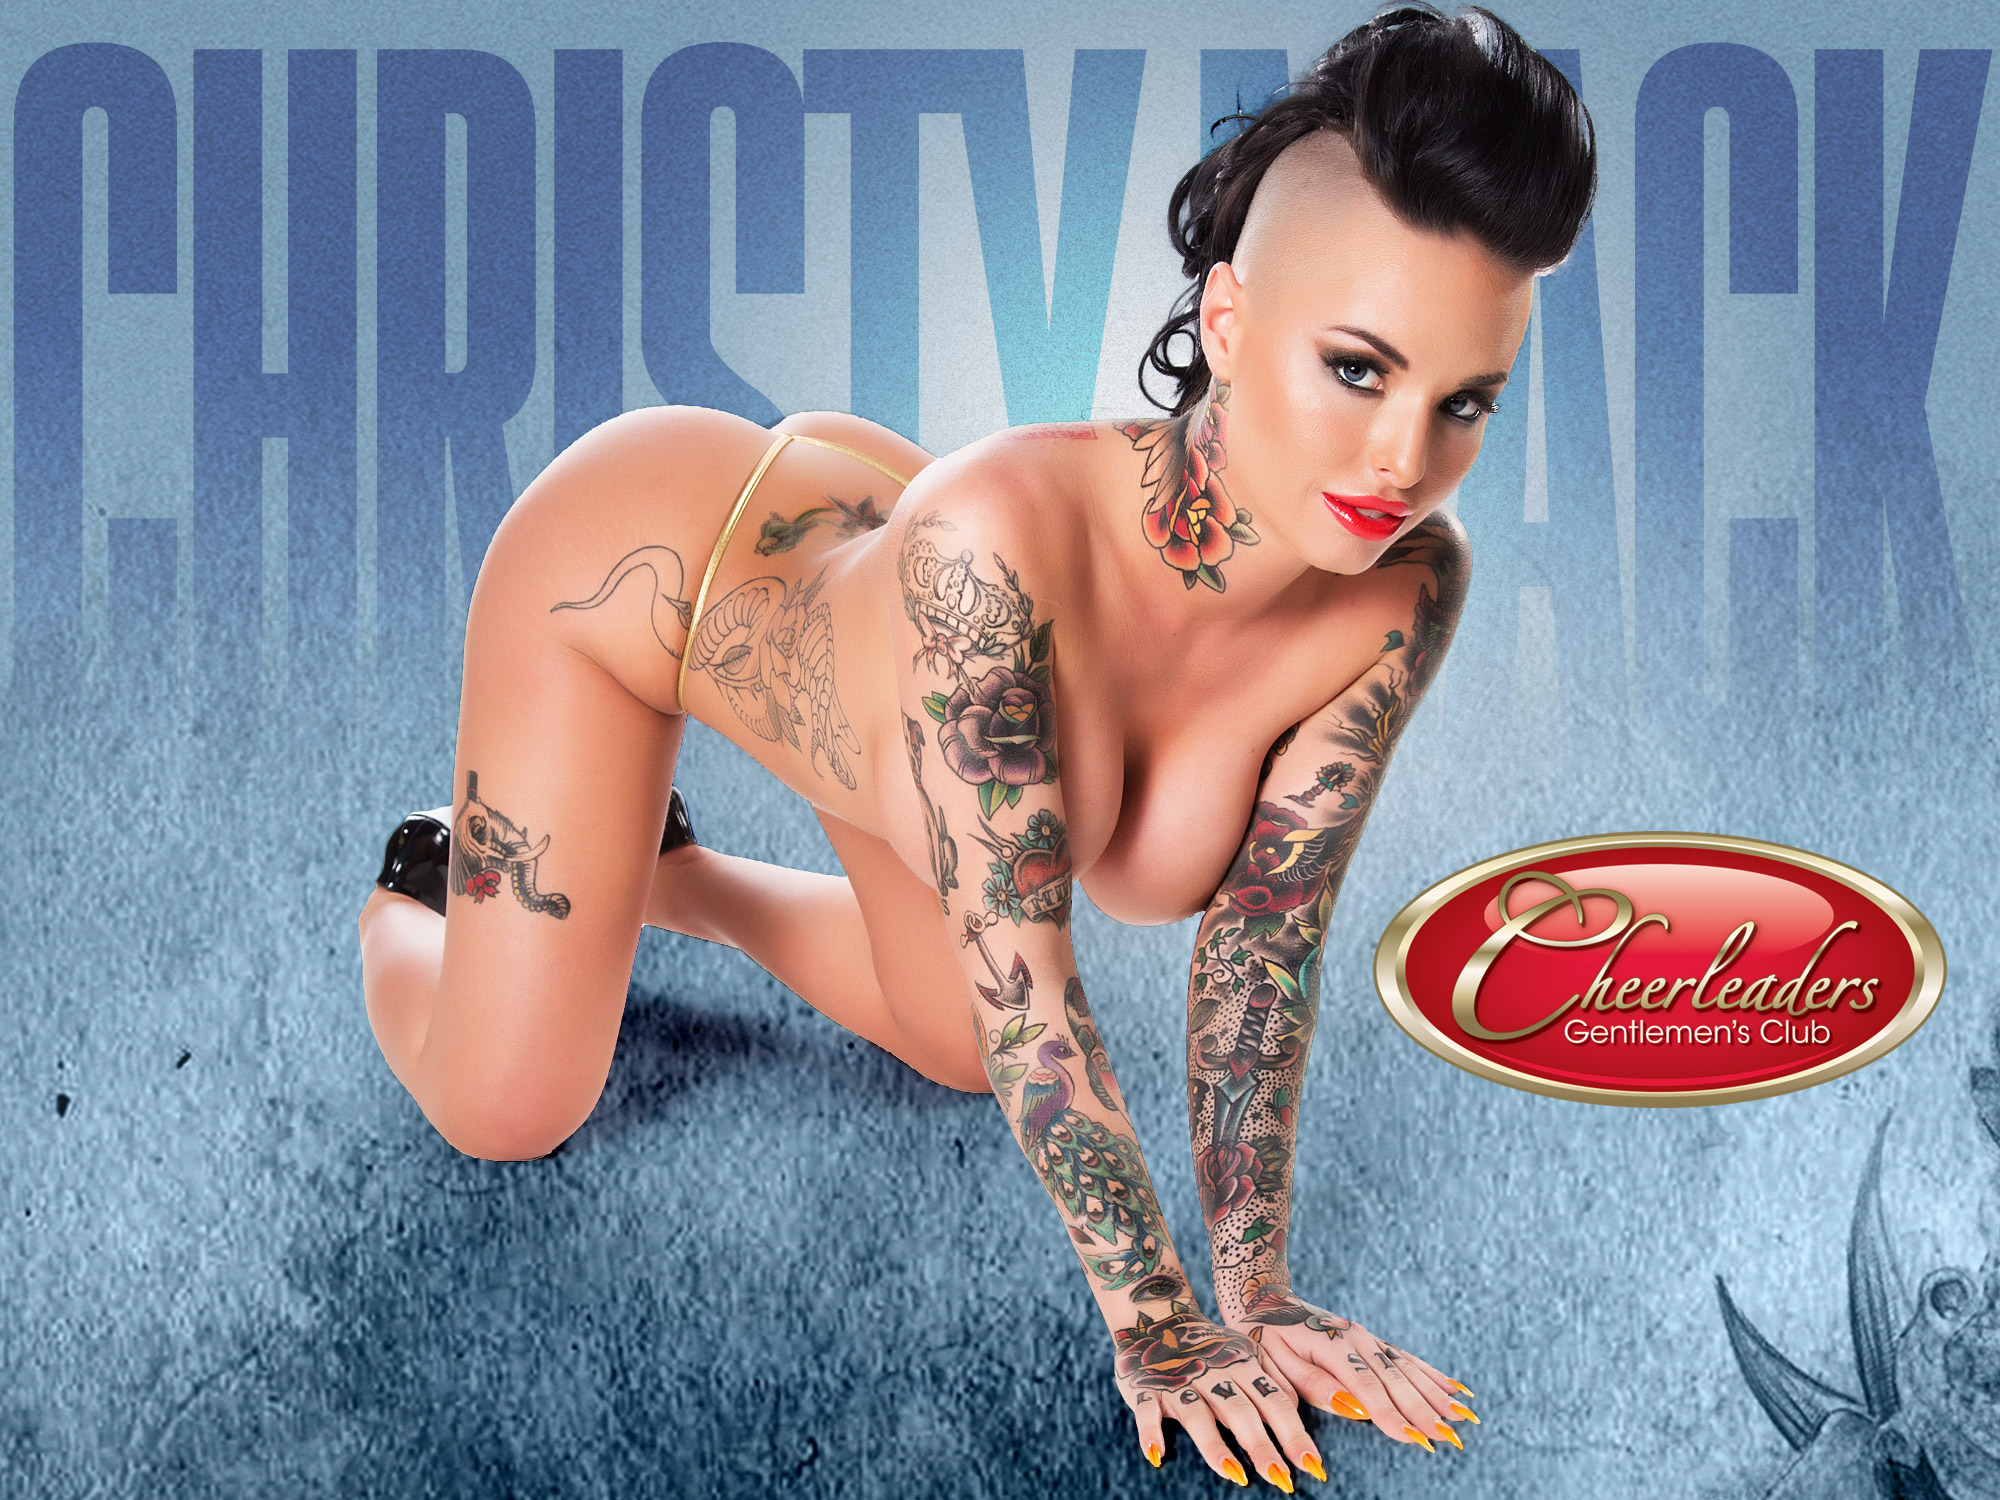 Christy Mack - Cheerleaders Philadelphia